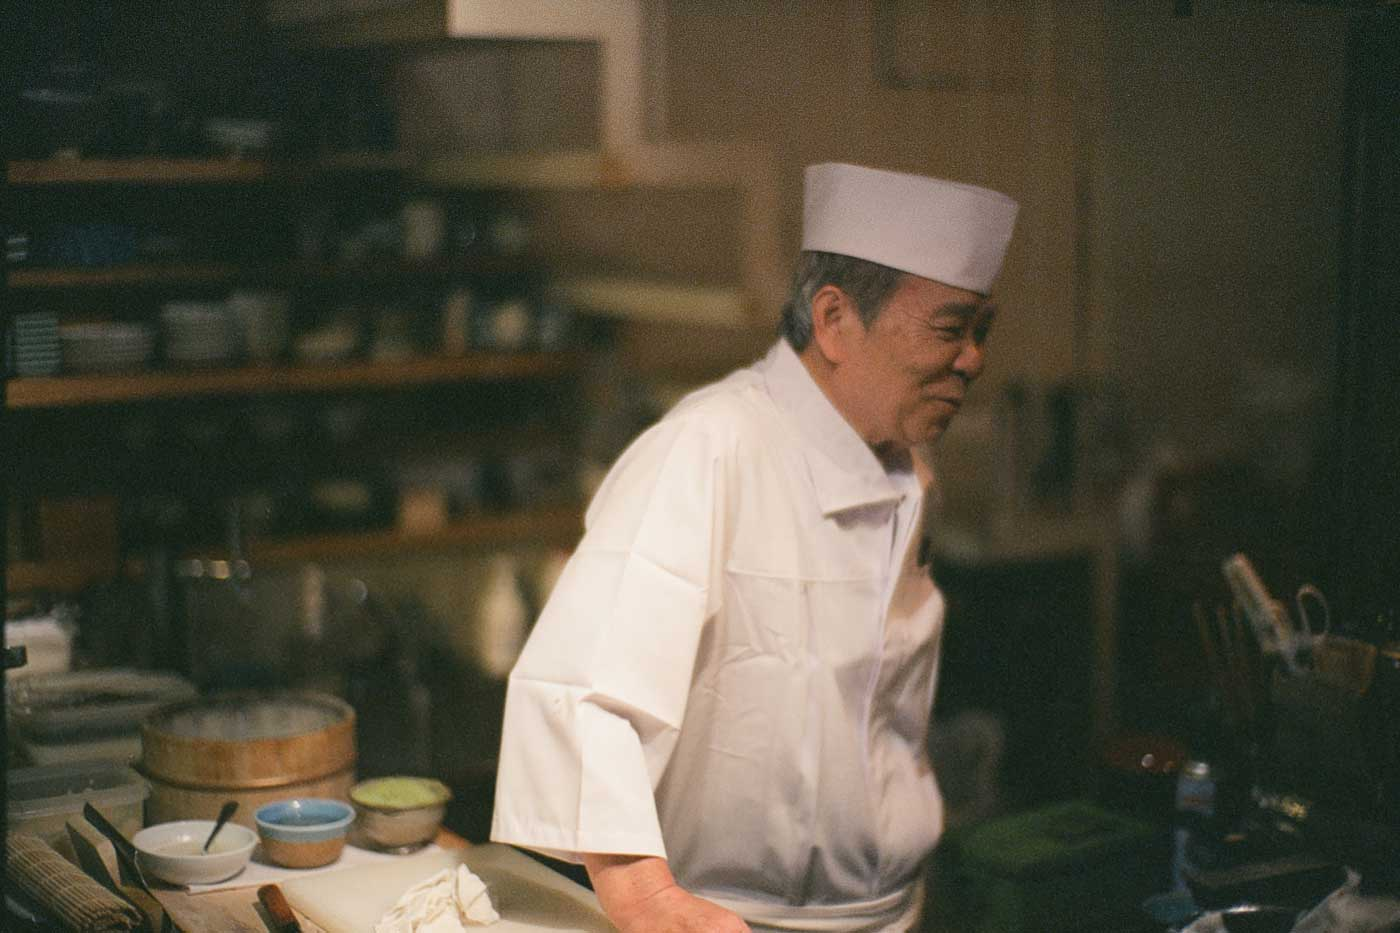 analog-film-review-kodak-vision3-vision-3-5219-7219-500T-800T-tungsten-photography-tokyo-japan-first-day-sushi-master-dinner-preparation-noctilux-50mm-f1.0-f1-50-v4-build-in-hood-e60